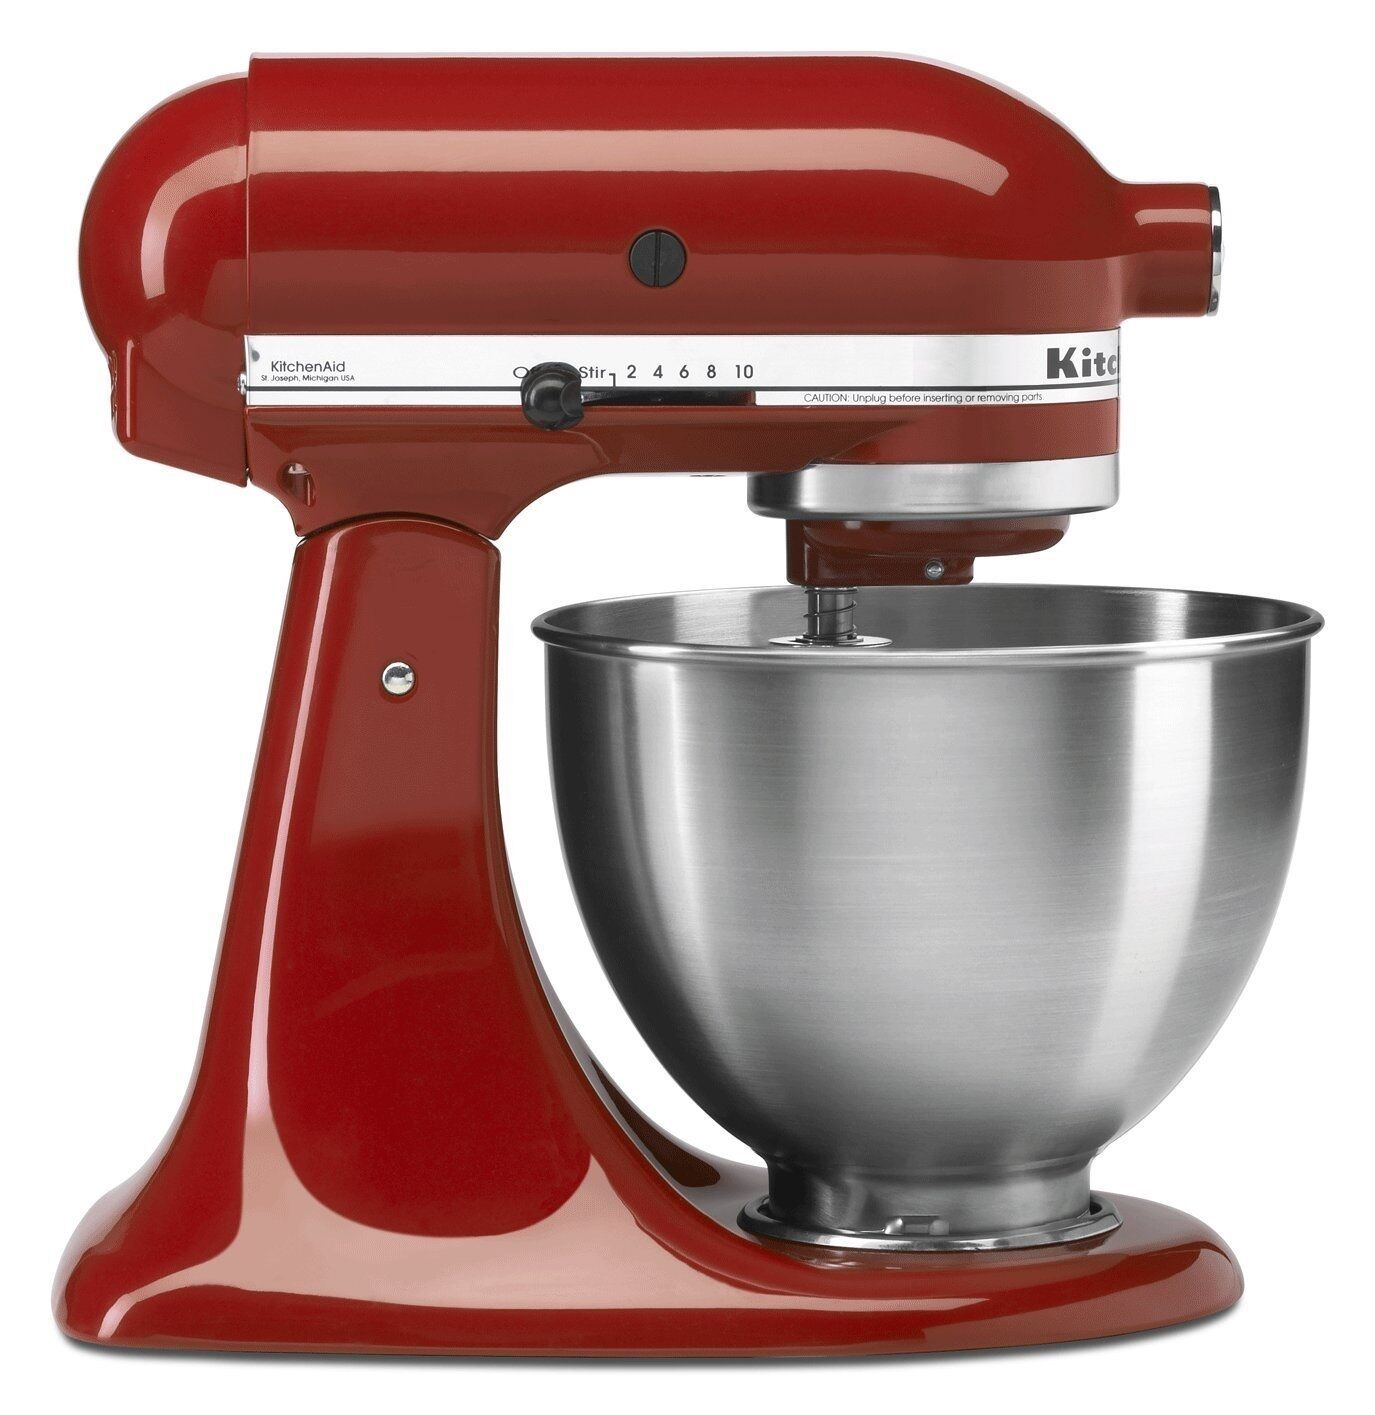 Brand New KitchenAid Stand Mixer Tilt 4.5 Quart Ksm8 All Metal Many Colors